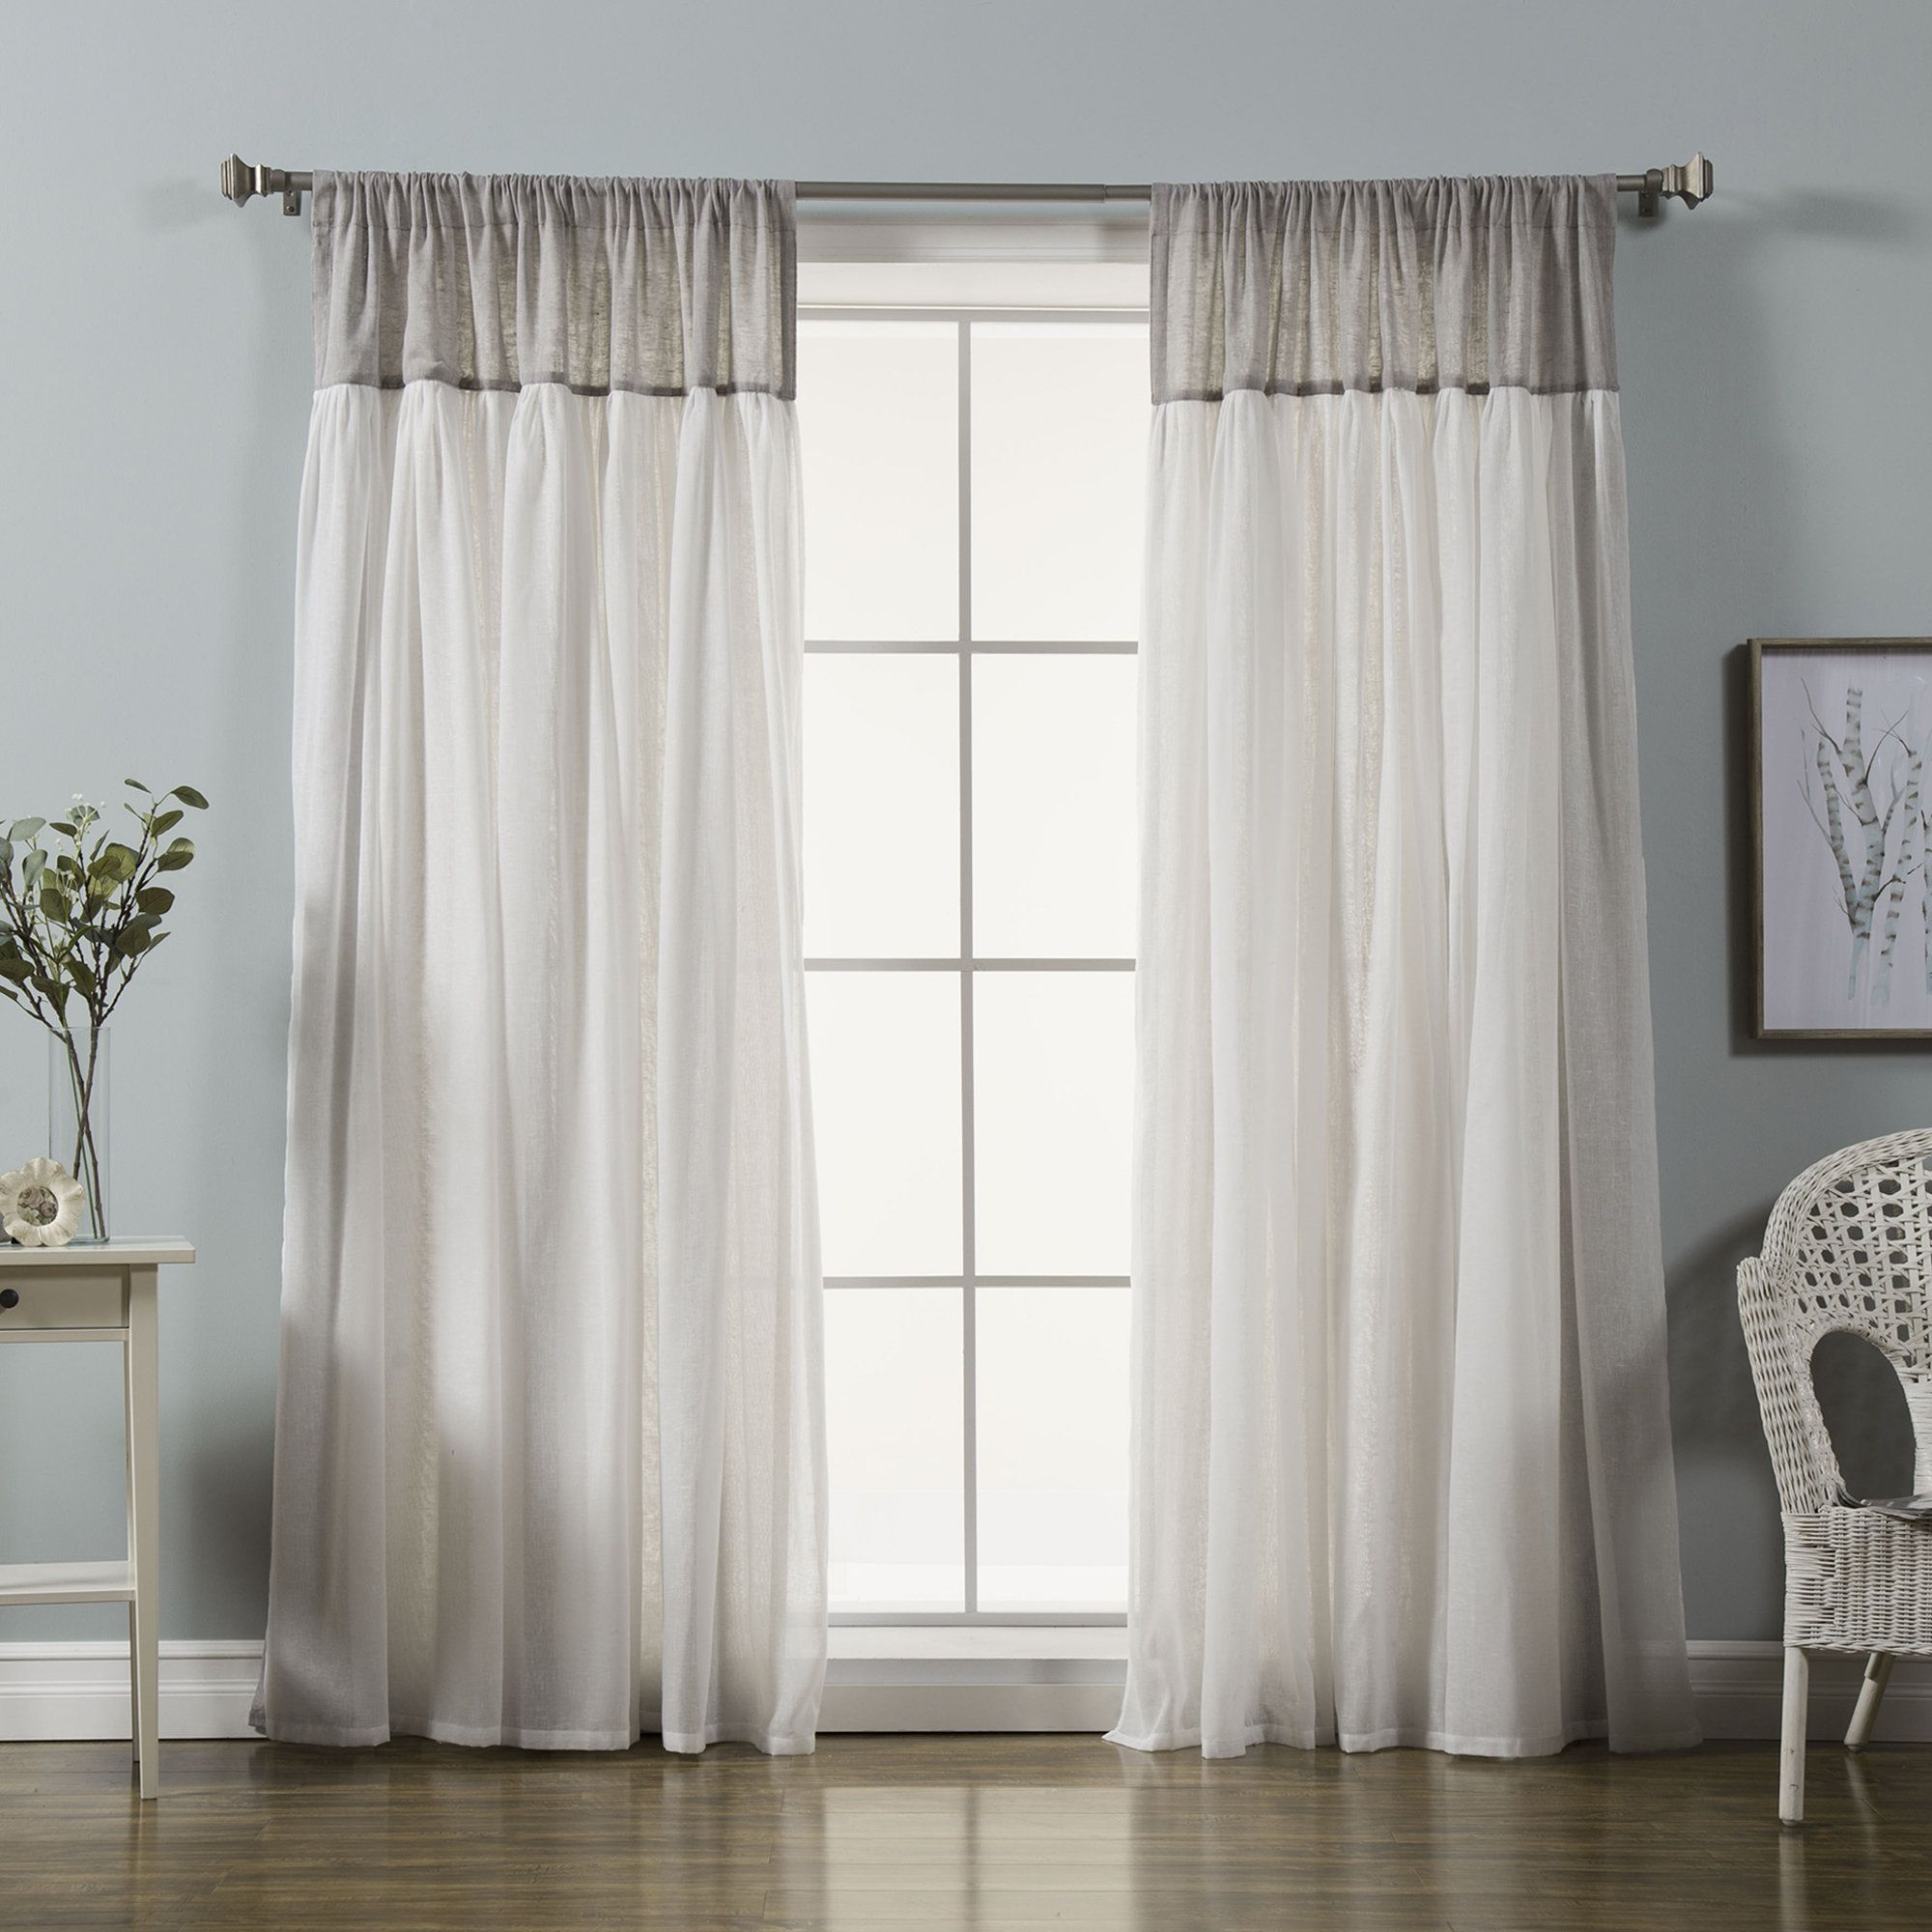 curtains curtain shower panels rods gray design window drapes vs of lovely beautiful ideas panel